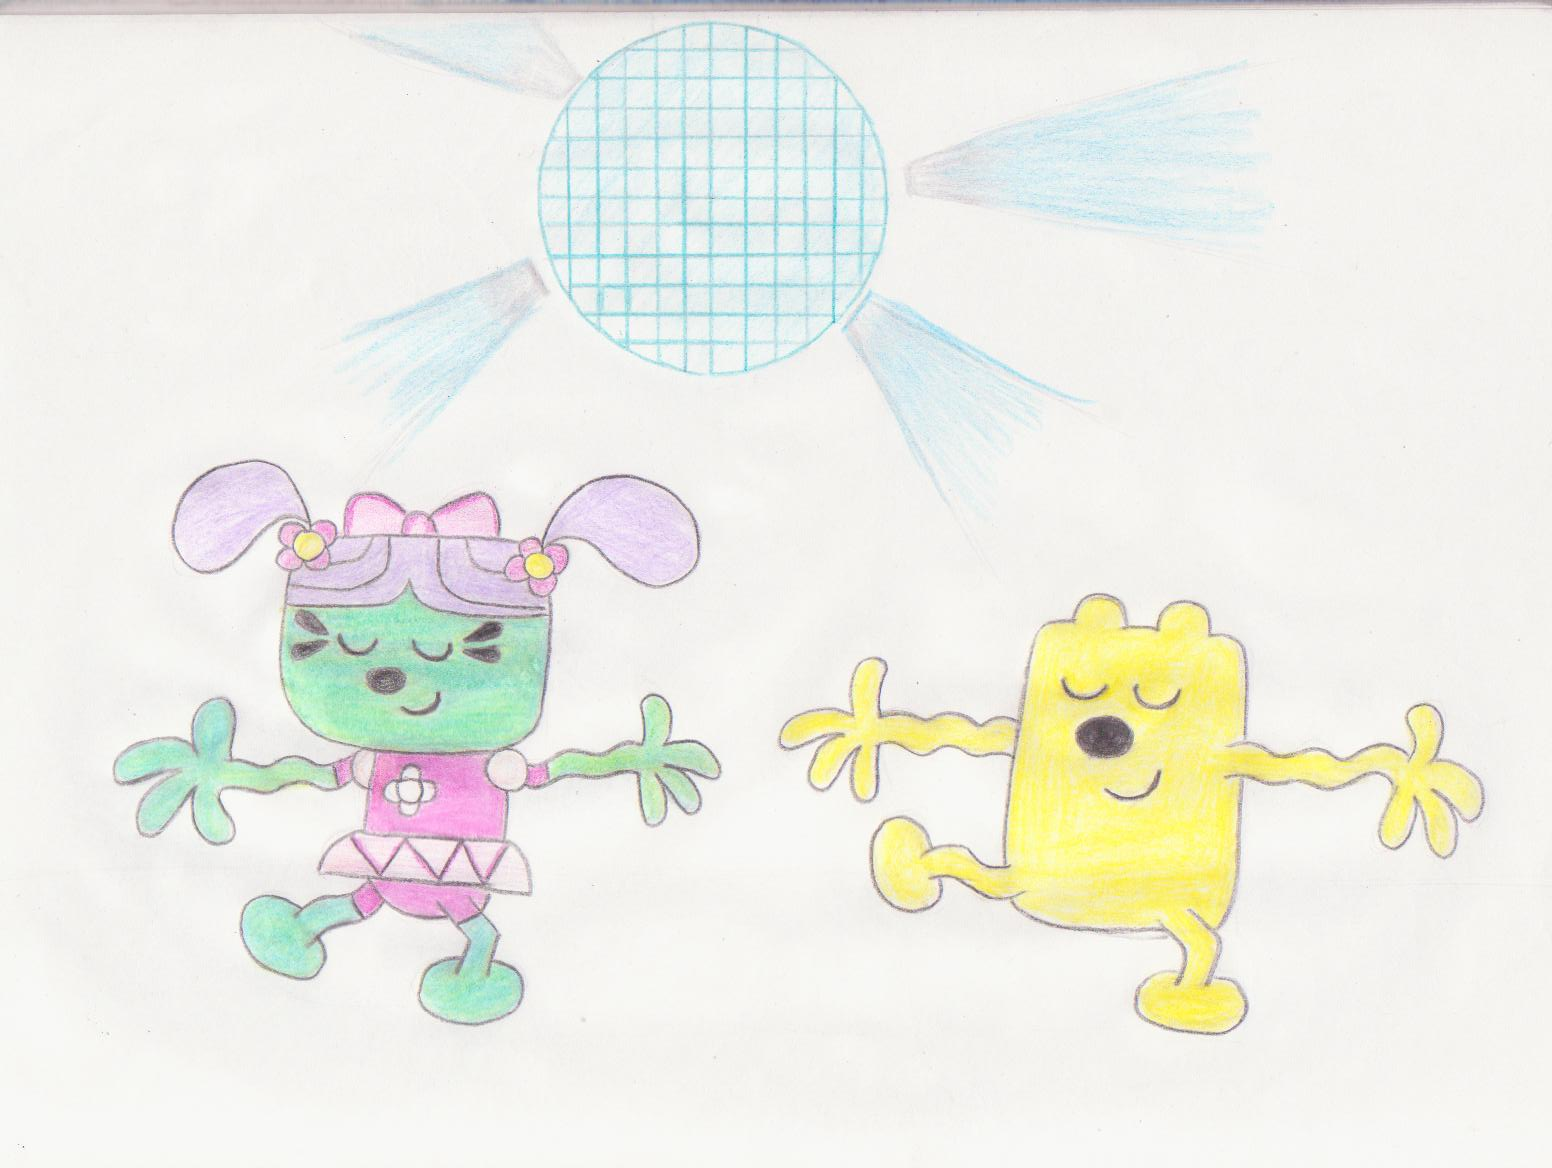 Wubbzy And Daizy Dancing By Wamaluiwal On DeviantArt